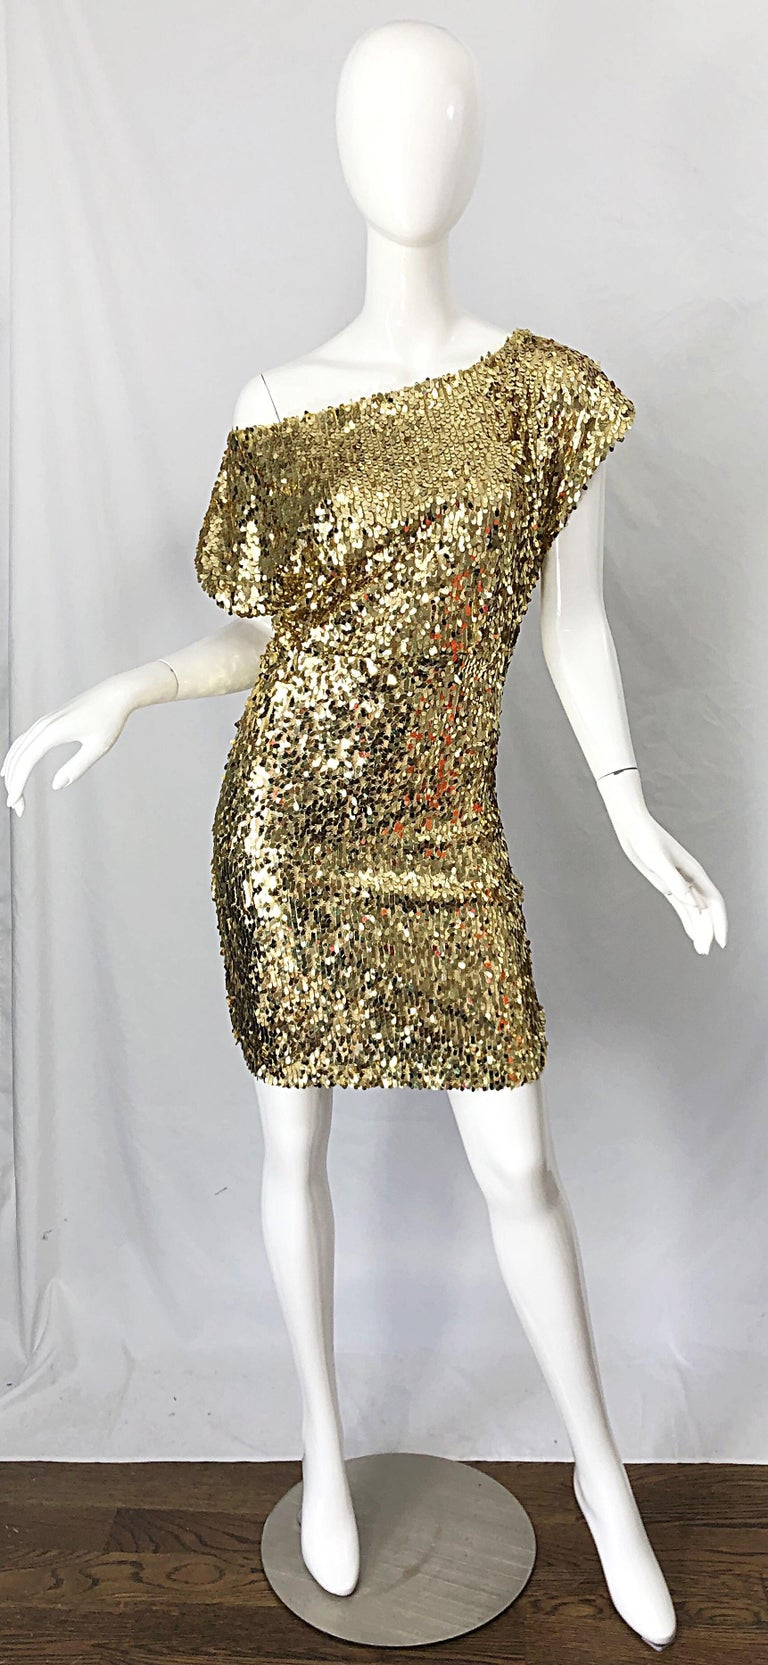 Sexy late 1990s Italian gold sequined off-the-shoulder dress ! Features thousands of hand-sewn sequins throughout the entire dress. Can be worn many ways ( as pictured ). Hidden zipper up the side with hook-and-eye closure. Perfect with sandals or